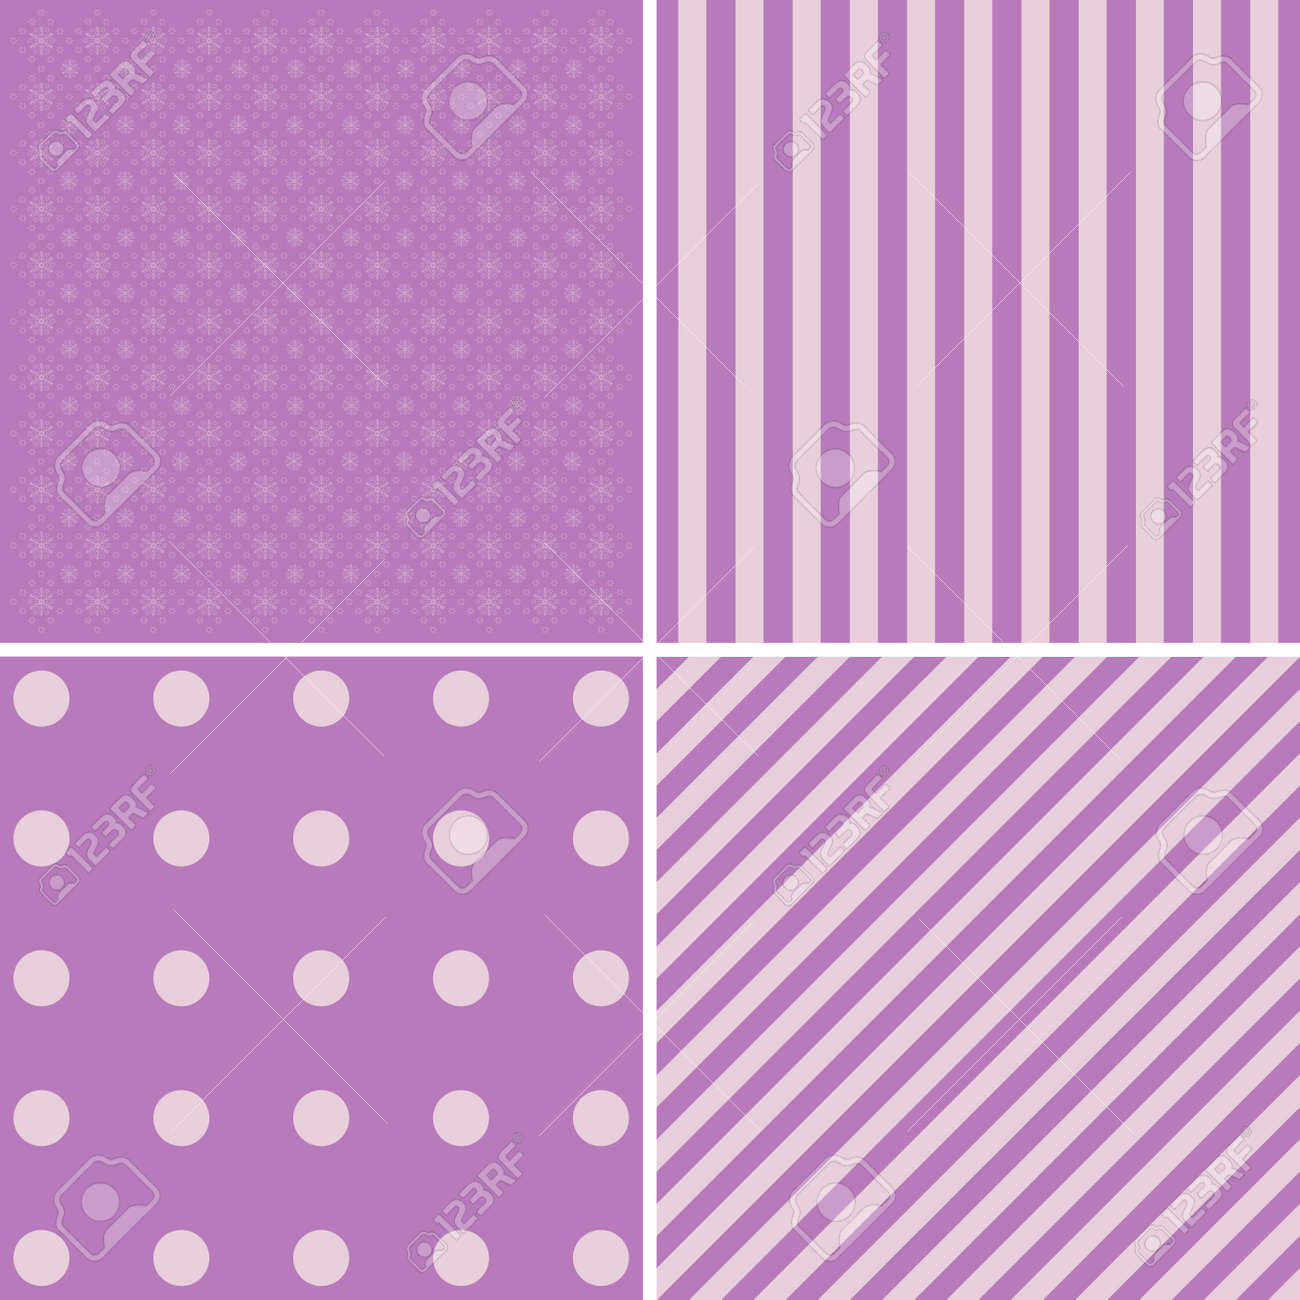 vector set of 4 retro background patterns in purple and green